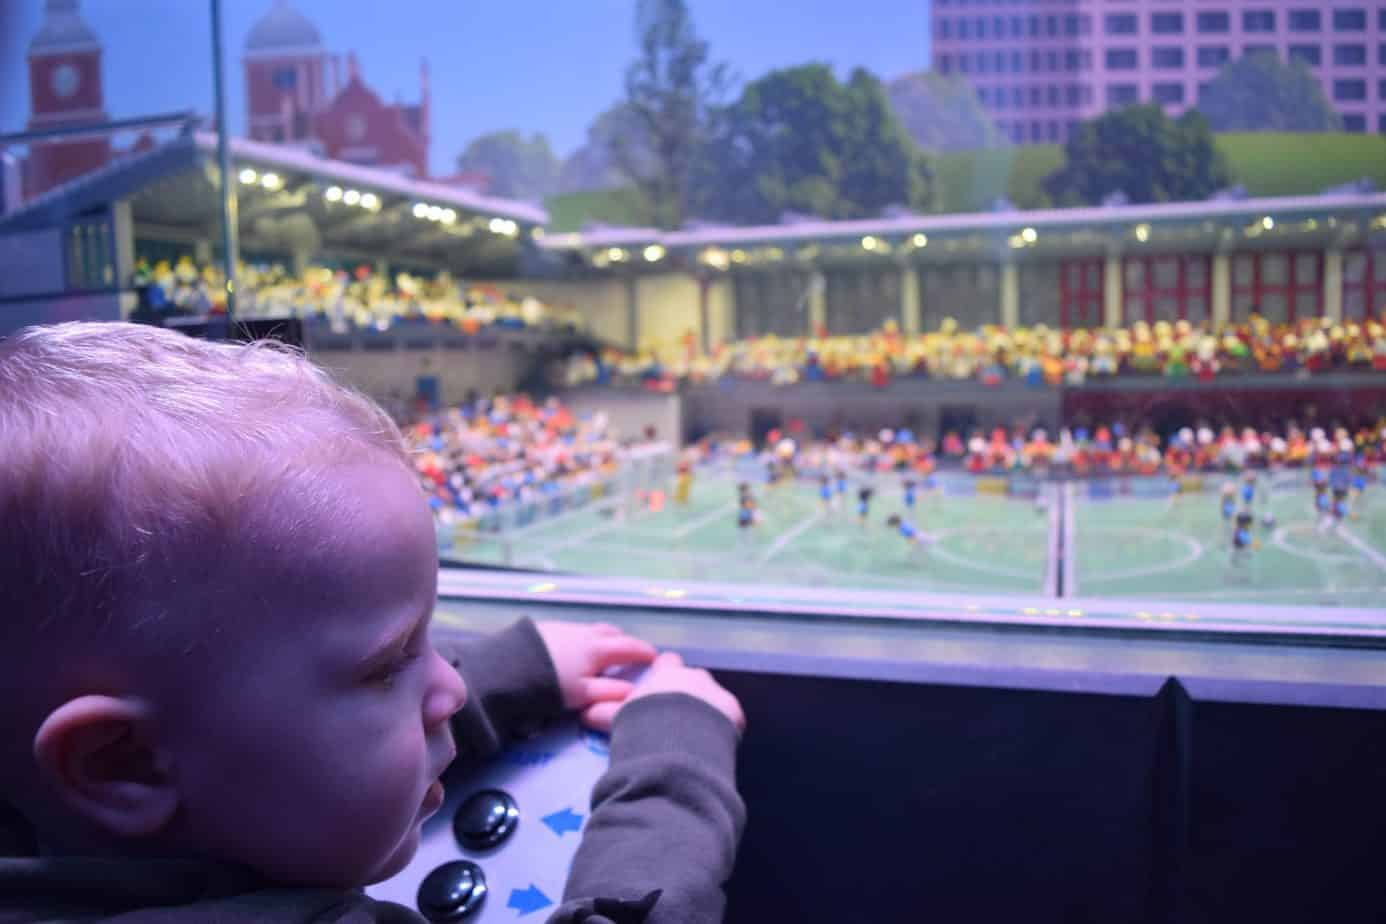 Baby K looking at a Lego football match